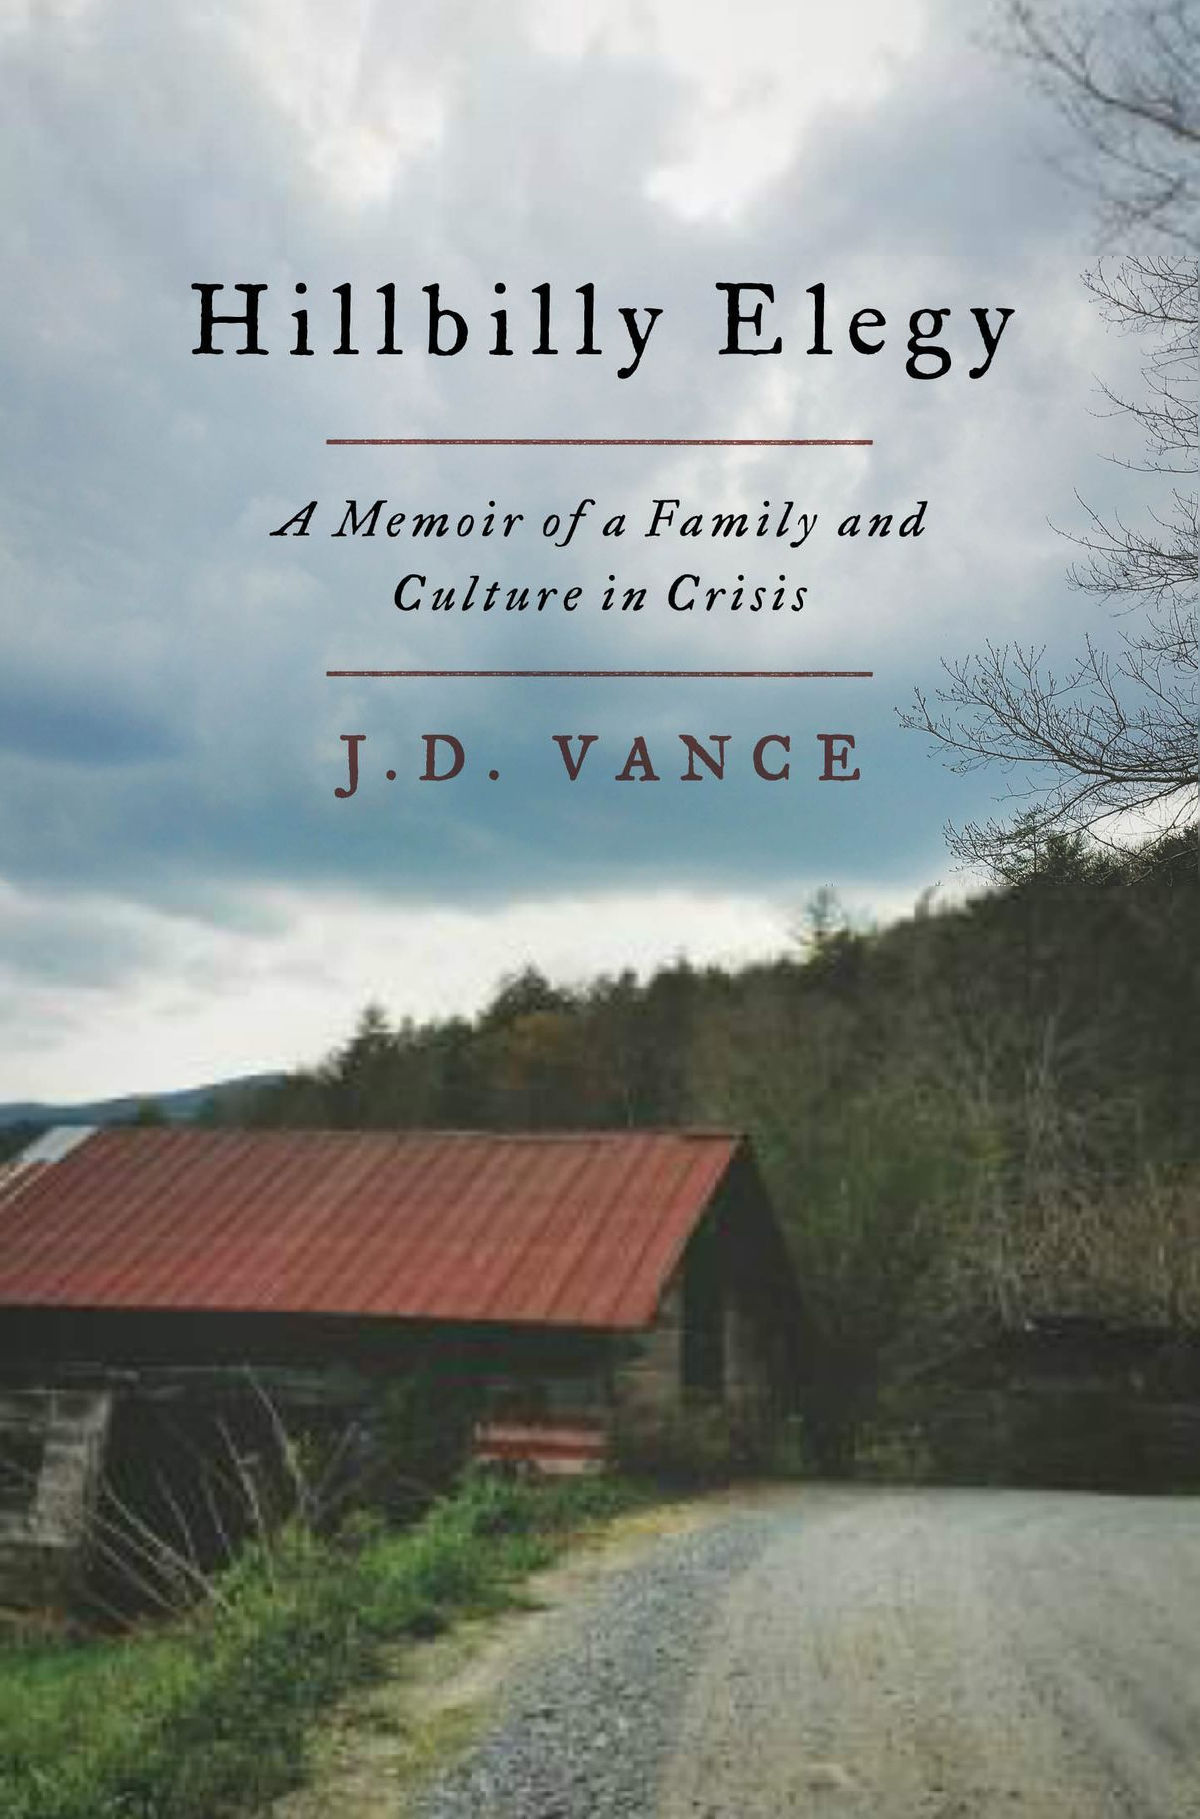 Hillbilly Elegy by JD Vance - a memoir by a man raised in Ohio by hillbillies from Kentucky. The link goes to BookLady's review of this book. http://lindajomartin.com/hillbilly-elegy-bookladys-review/